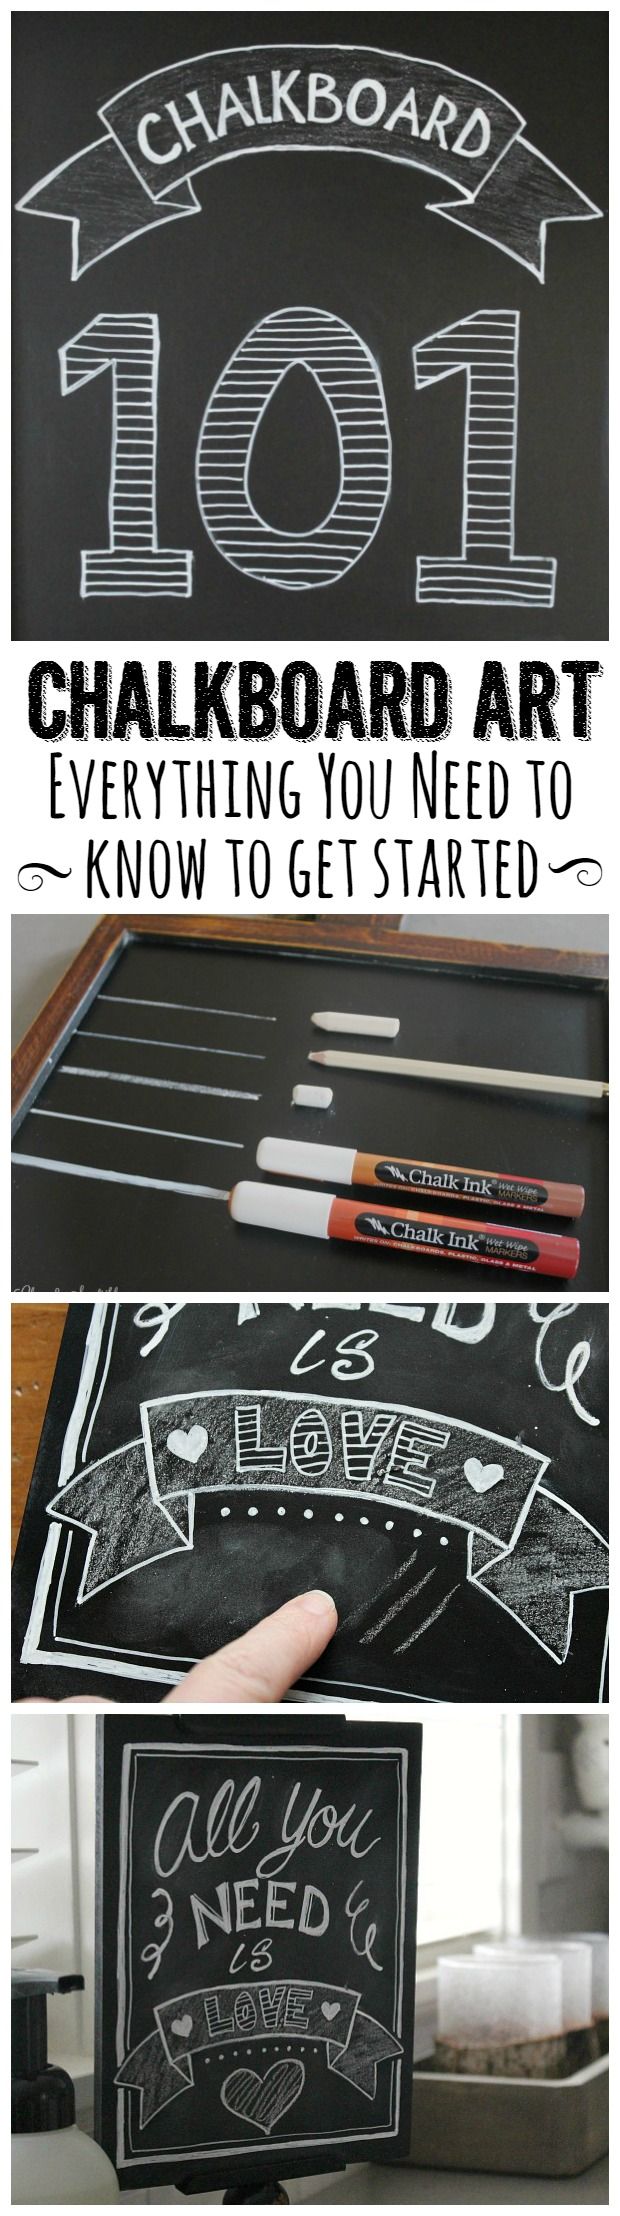 Find all of the basics to get started on your own chalkboard art.  It's fun and easy to do!